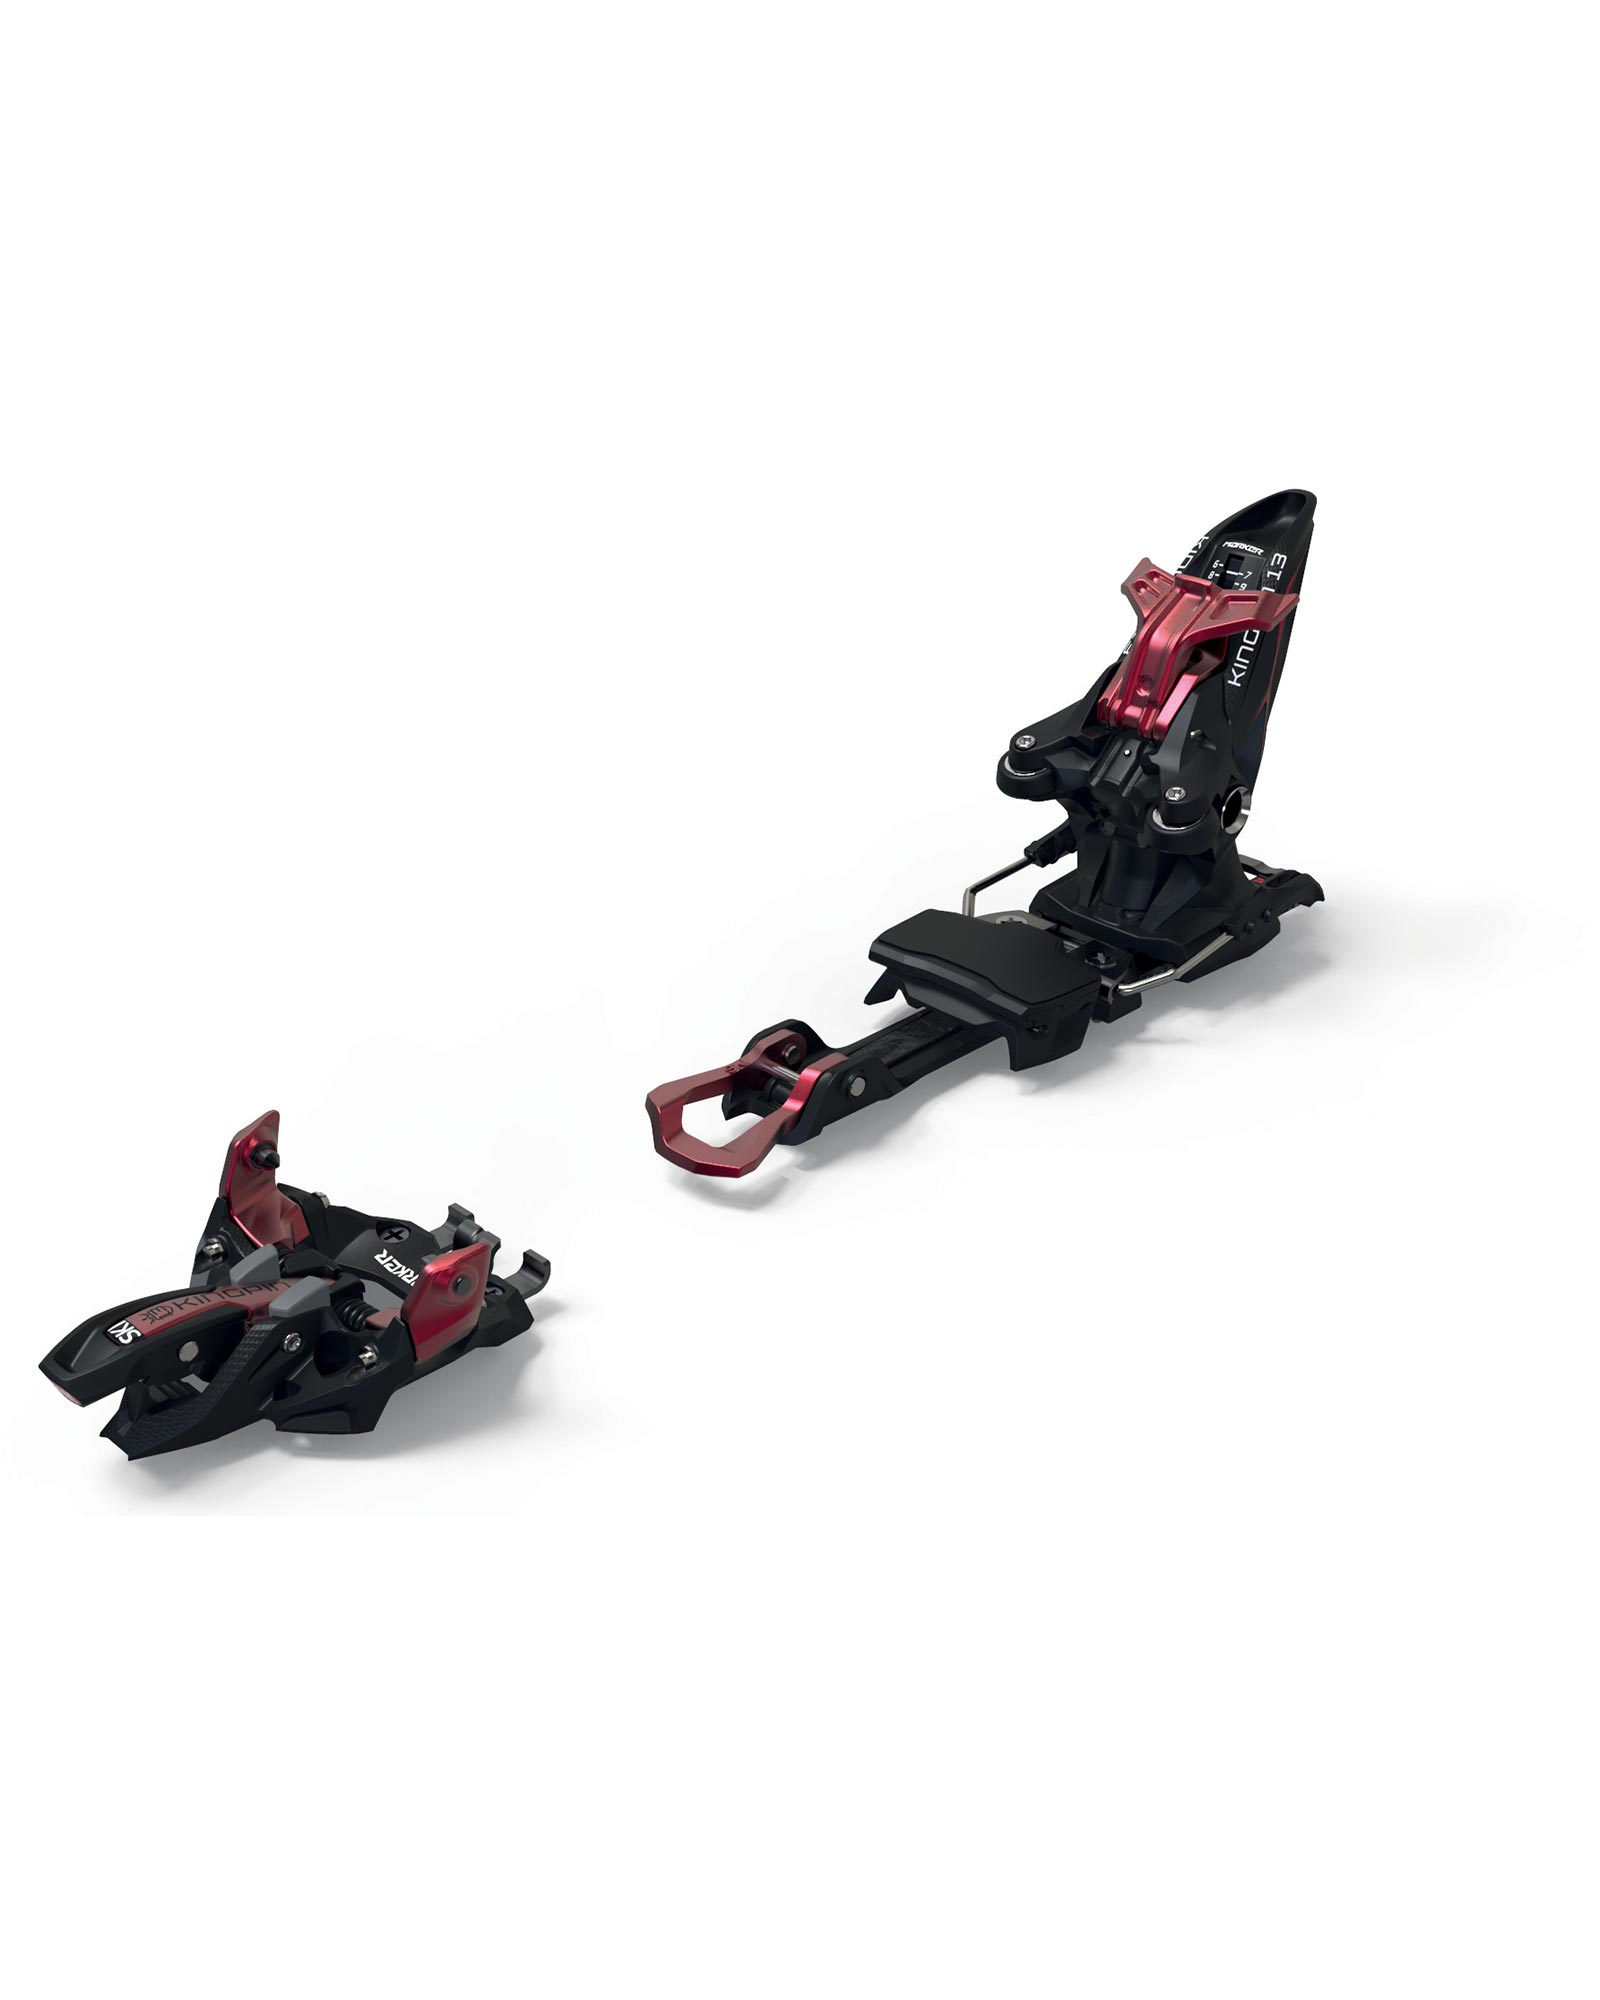 Marker Kingpin 13 75-100mm Backcountry Ski Bindings 2020 / 2021 0